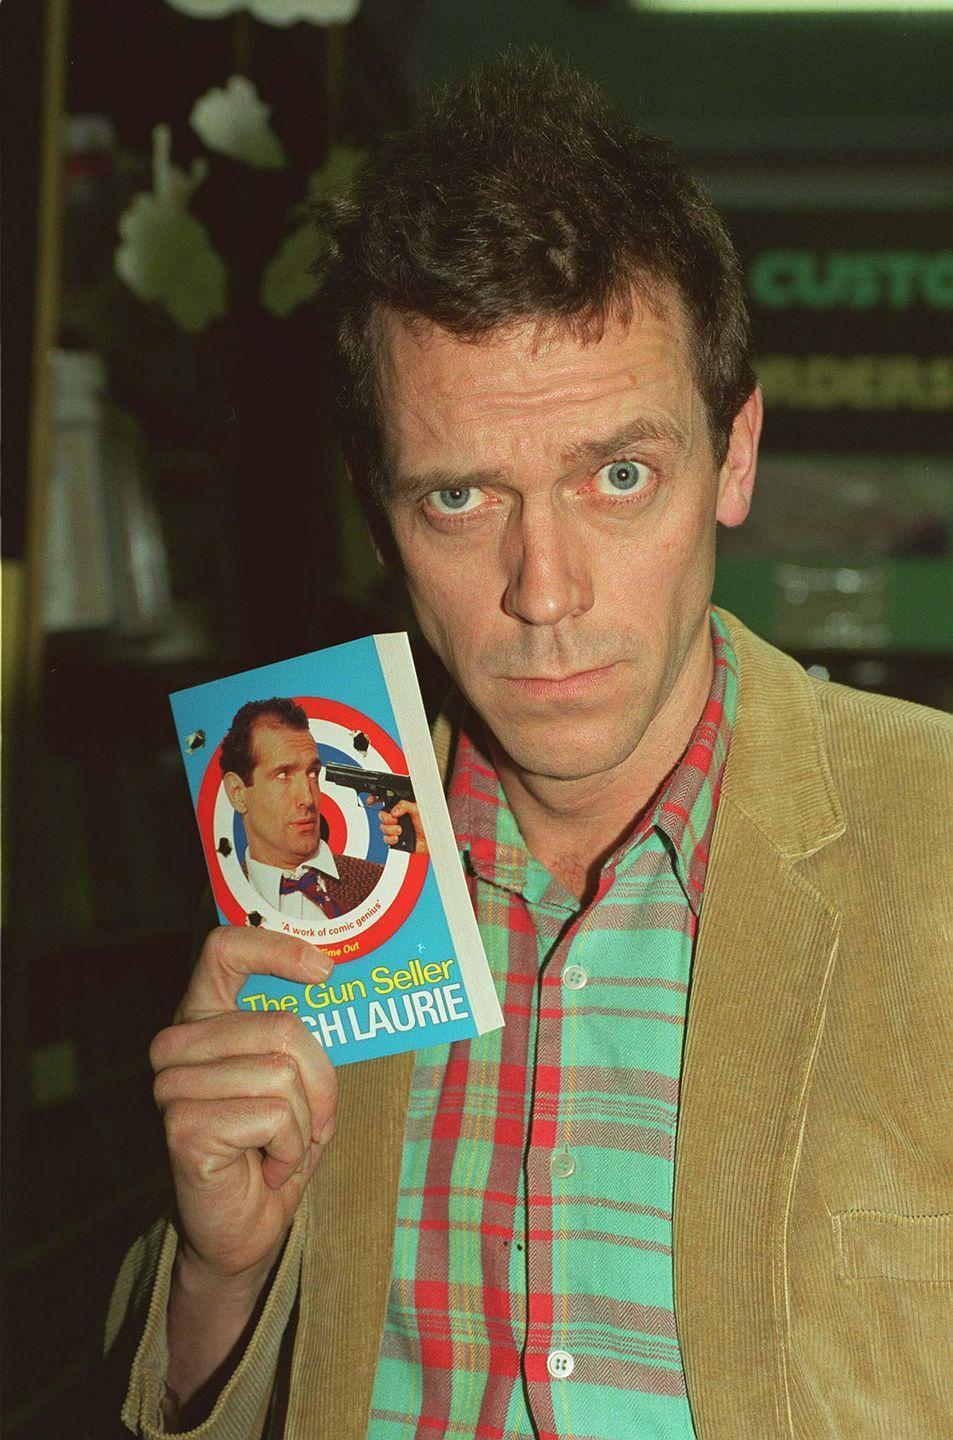 "<p>PSA for anyone who wasn't already in the know: Hugh Laurie is funny. While many fans these days know him as the crotchety Dr. House, Hugh was one half of the comedy duo Fry and Laurie (with fellow British comedian Stephen Fry). The Golden Globe winner tapped into his satirical side for his first novel in 1996, <em>The Gun Seller. </em></p><p><a href=""https://www.publishersweekly.com/978-1-56947-087-9"" rel=""nofollow noopener"" target=""_blank"" data-ylk=""slk:Publishers Weekly"" class=""link rapid-noclick-resp"">Publishers Weekly</a> referred how Hugh portrays the spy thriller genre as the equivalent of Douglas Adams's take on science fiction with <em>A Hitchhiker's Guide to the Galaxy</em>. </p><p>There's also a story that <em>The Night Manager</em> star initially submitted the manuscript under a pseudonym.</p><p><a class=""link rapid-noclick-resp"" href=""https://www.amazon.com/Gun-Seller-Hugh-Laurie-2004-10-07/dp/B017MYSYIQ/ref=pd_lpo_14_img_0/138-4338020-7856400?_encoding=UTF8&pd_rd_i=B017MYSYIQ&pd_rd_r=f0872f1e-397d-452a-a58d-04b2ae2fcbef&pd_rd_w=shf0L&pd_rd_wg=zd8u2&pf_rd_p=7b36d496-f366-4631-94d3-61b87b52511b&pf_rd_r=HV0A18MKPQGD0X1AQVH5&psc=1&refRID=HV0A18MKPQGD0X1AQVH5&tag=syn-yahoo-20&ascsubtag=%5Bartid%7C2139.g.34385633%5Bsrc%7Cyahoo-us"" rel=""nofollow noopener"" target=""_blank"" data-ylk=""slk:Buy the Book"">Buy the Book</a></p>"